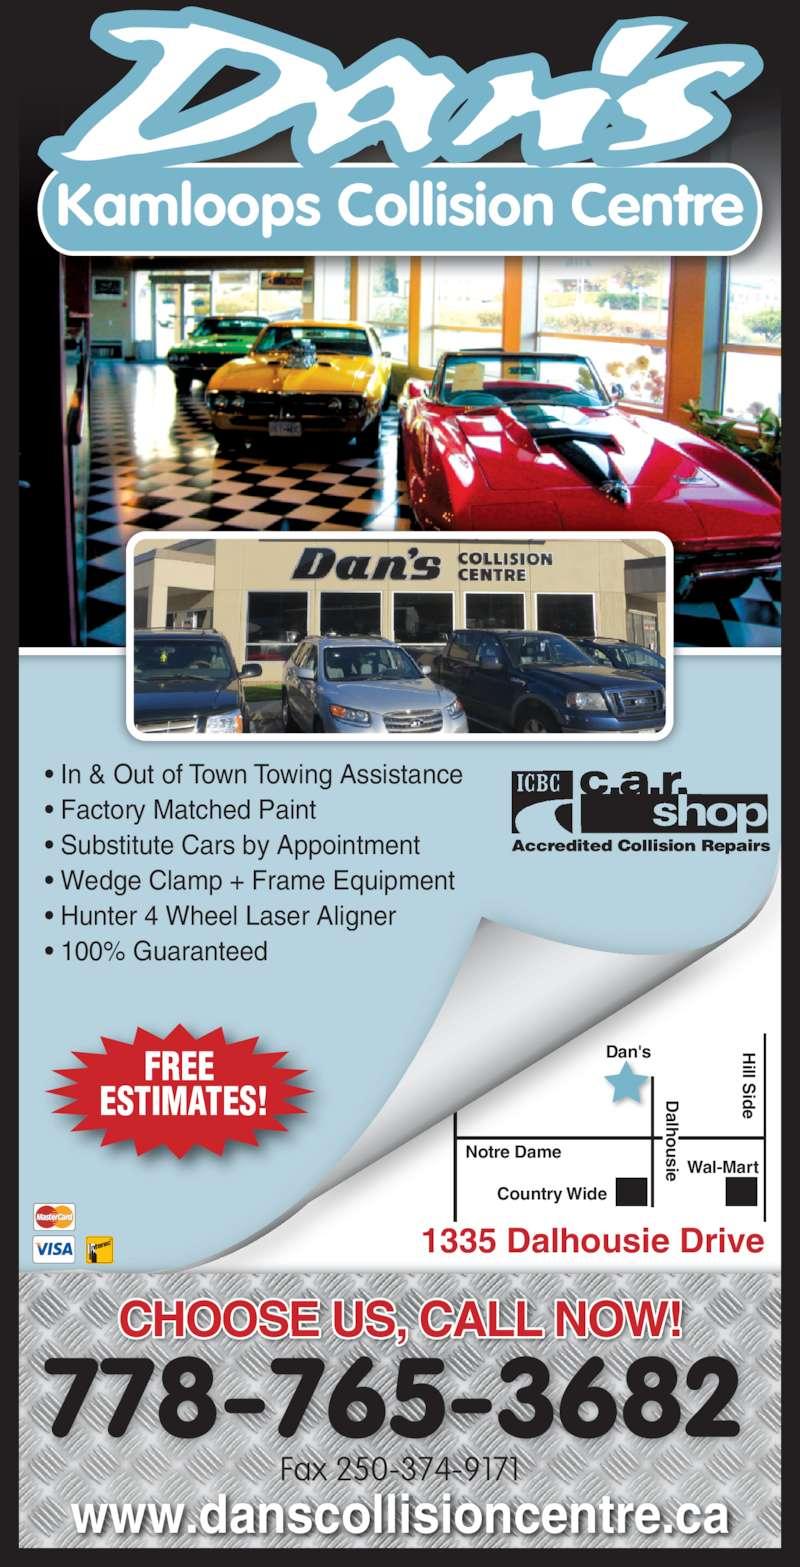 Dan's Kamloops Collision Centre (250-374-2523) - Display Ad - Fax 250-374-9171 1335 Dalhousie Drive Hill Side hh Dalhou sie Kamloops Collision Centre ? In & Out of Town Towing Assistance ? Wedge Clamp + Frame Equipment ? Hunter 4 Wheel Laser Aligner ? 100% Guaranteed CHOOSE US, CALL NOW! 778-765-3682 www.danscollisioncentre.ca FREE ESTIMATES! Wal-Mart Dalhousie ? Factory Matched Paint ? Substitute Cars by Appointment Dalhousie Notre Dame Dan's Country Wide Hill Side